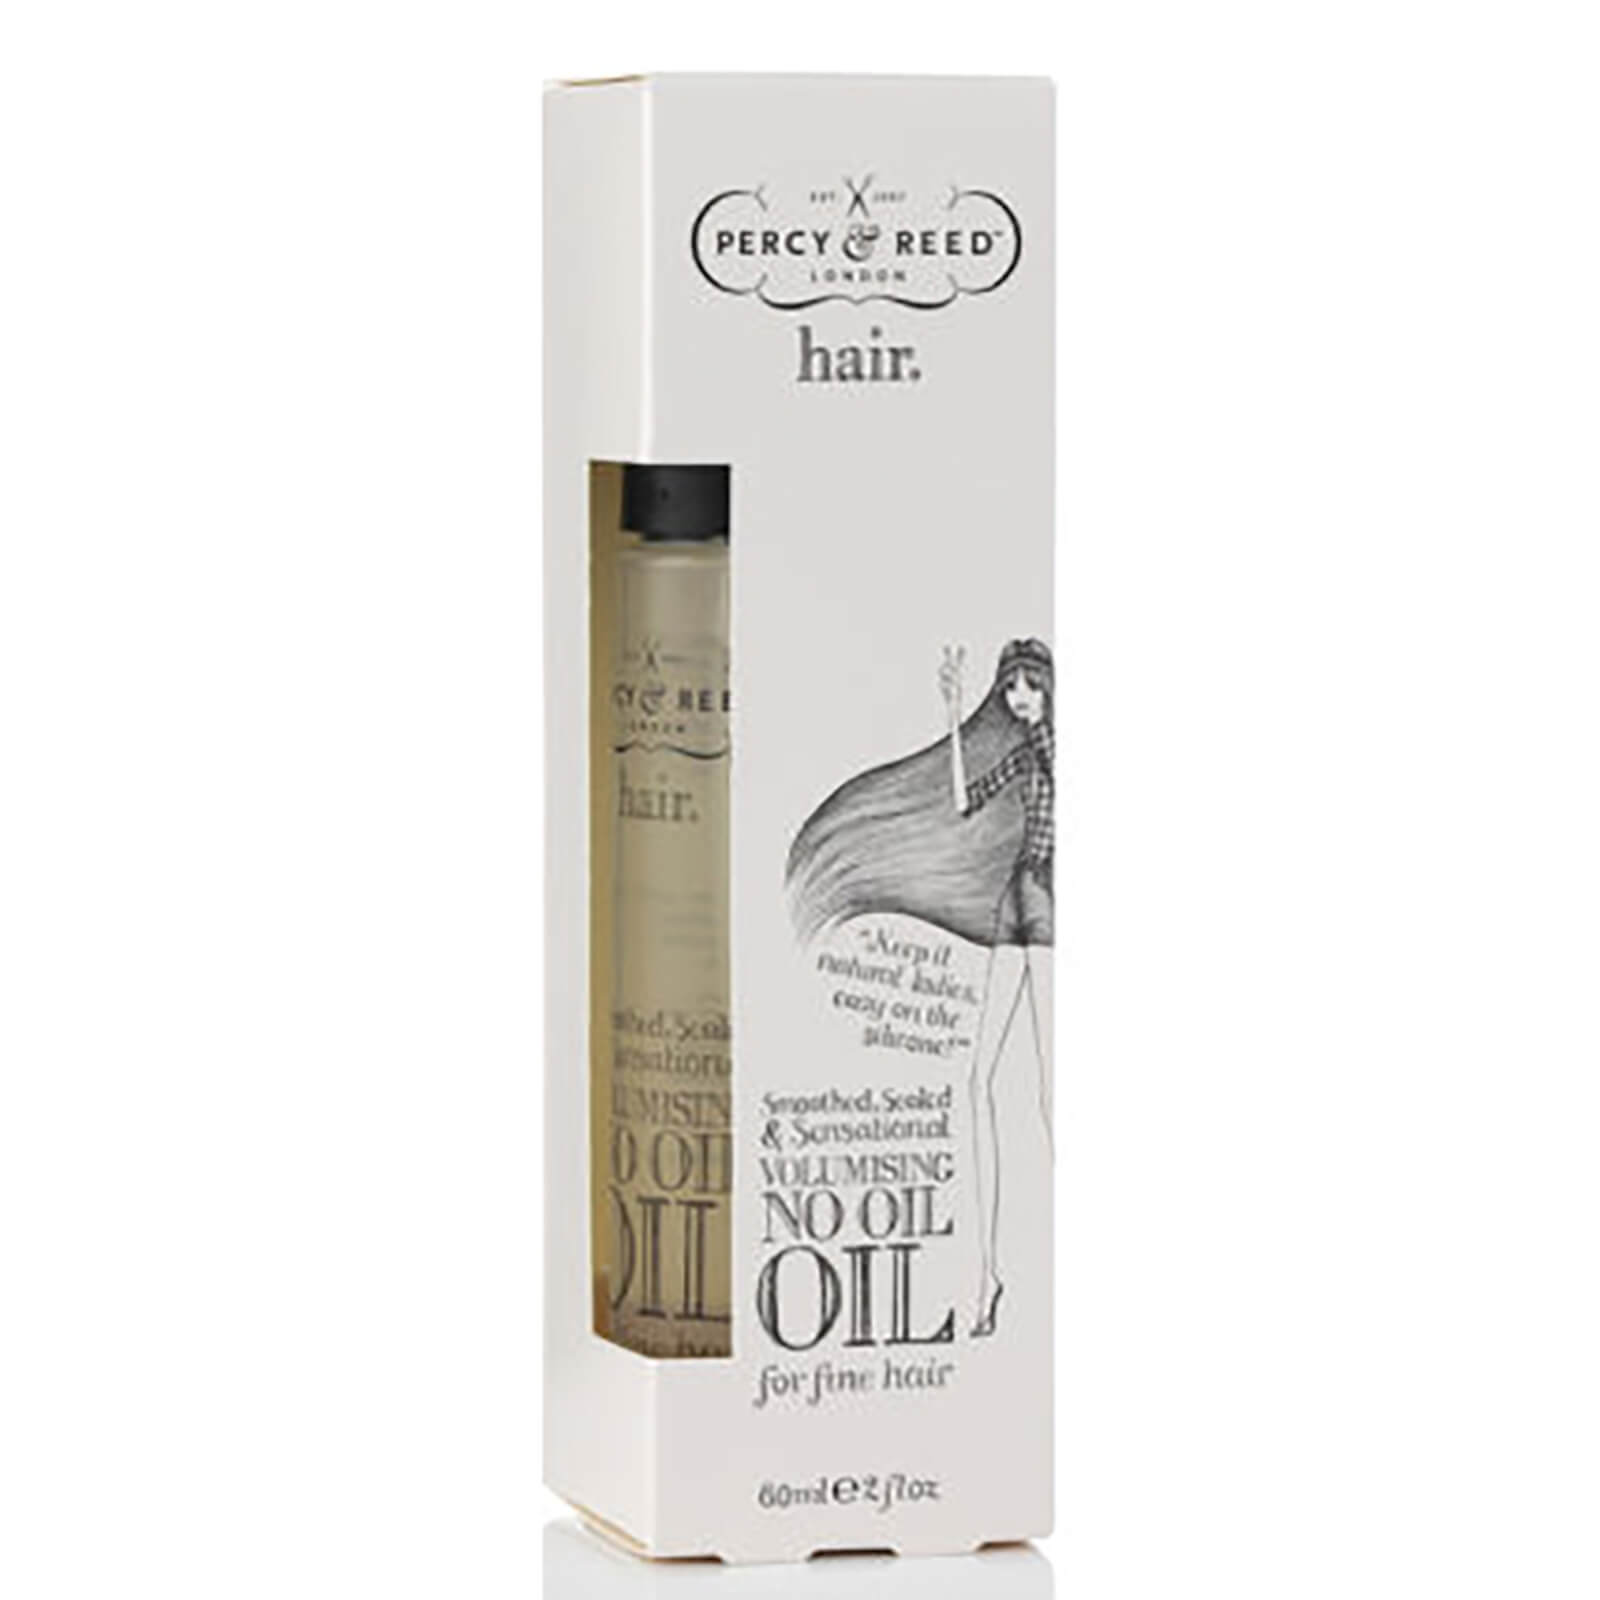 Percy & Reed Smooth Sealed and Sensational Volumising No Oil for Fine Hair (60ml)